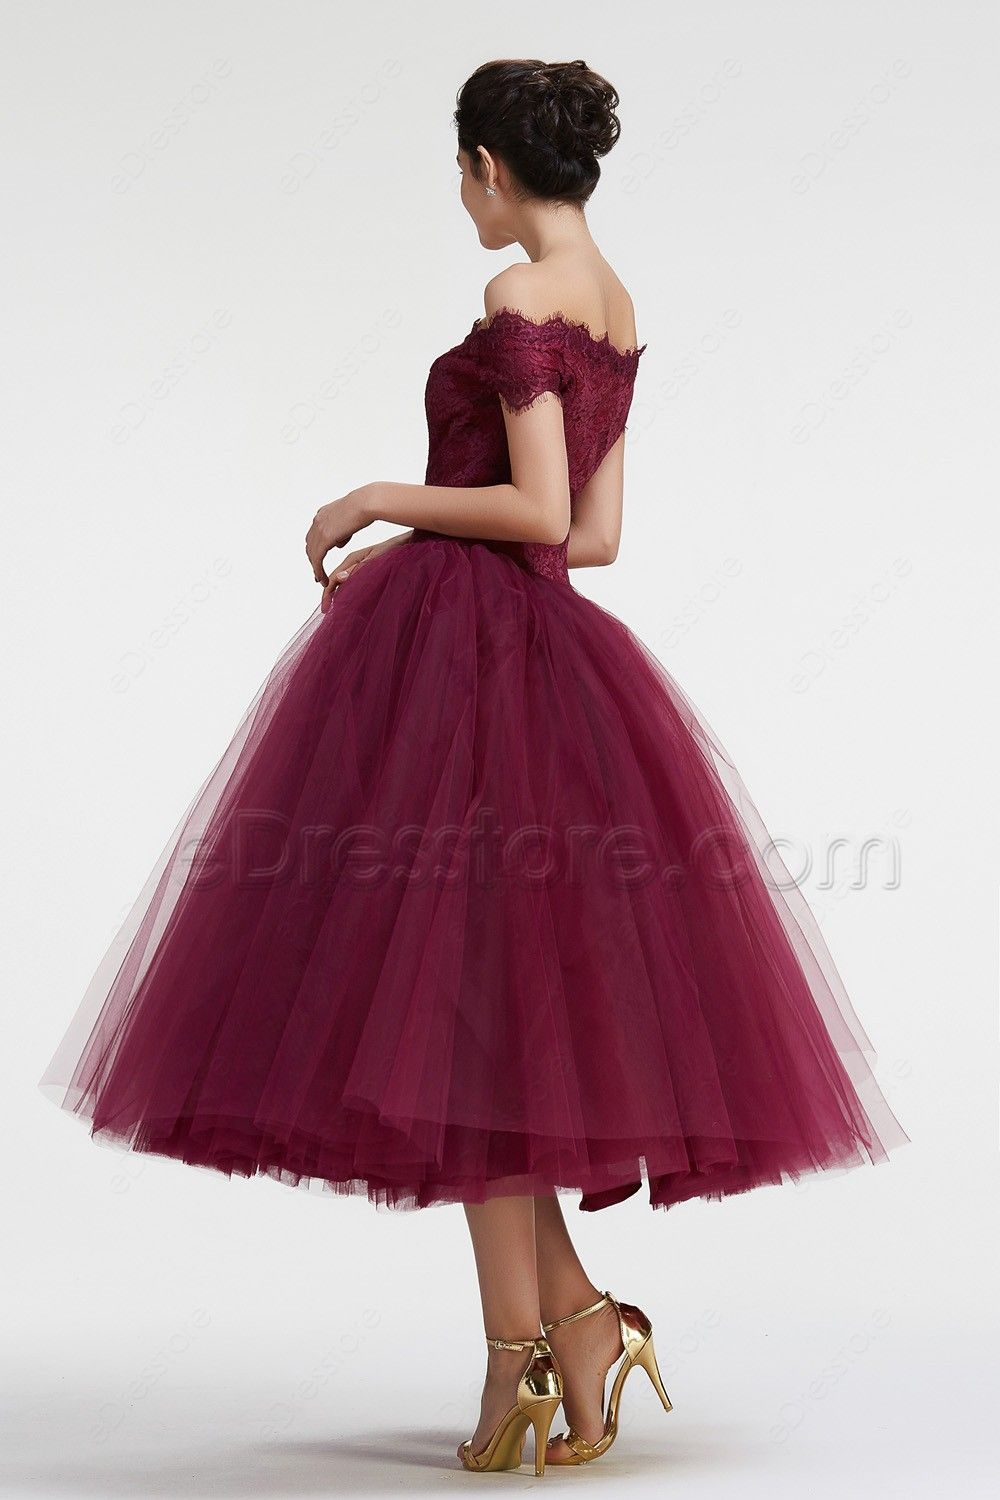 Off the shoulder tea length wedding dress  Burgundy Off the Shoulder Ball Gown VIntage Prom Dresses Tea Length